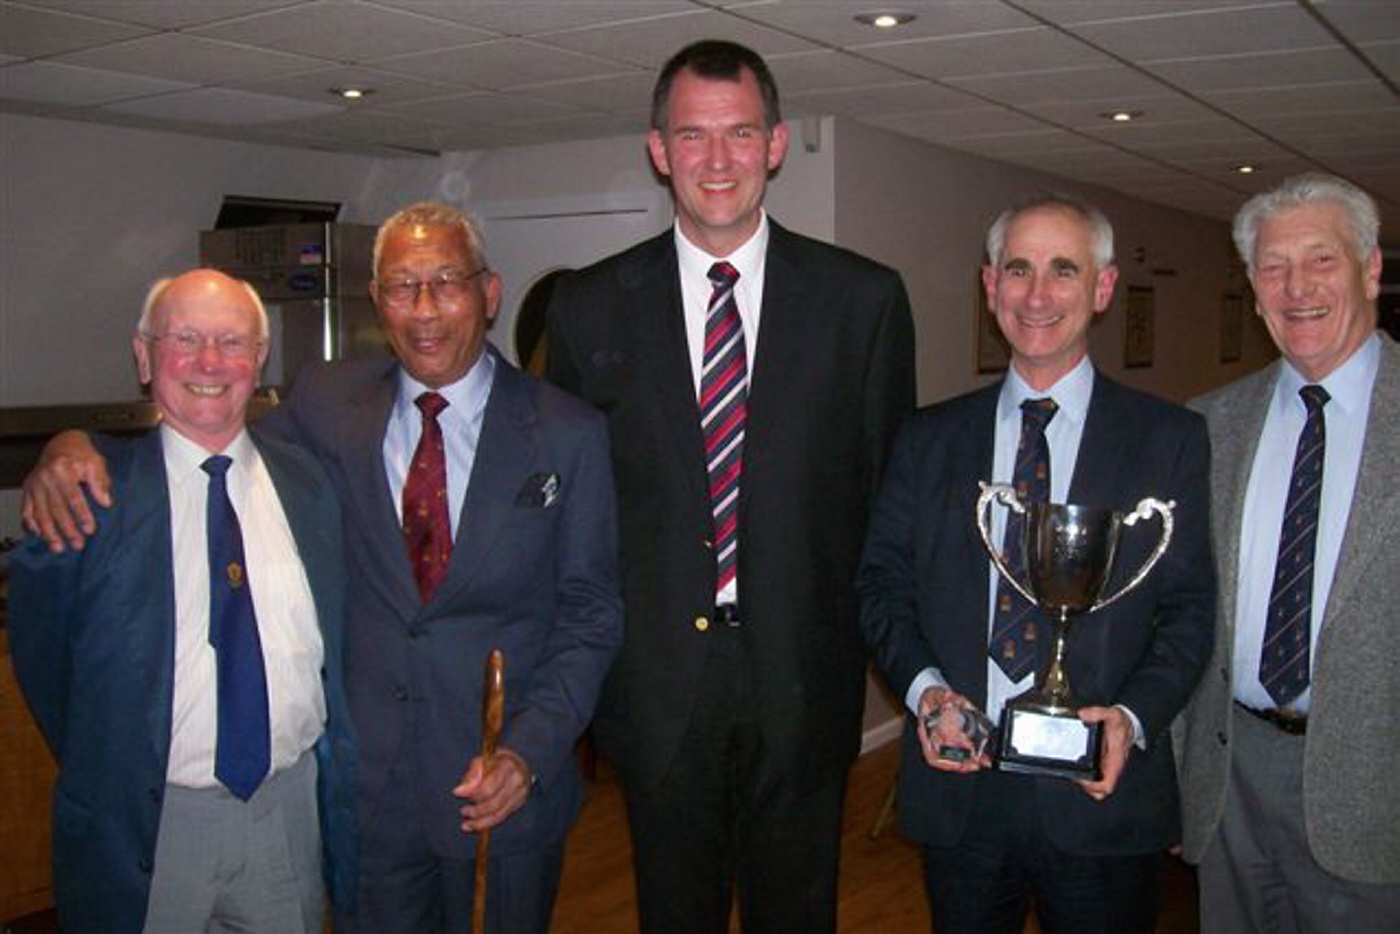 Pictured are David Benwell, Ken Sangster, Sean Canham, Nick Hopson-Hill and Cliff Tucker.